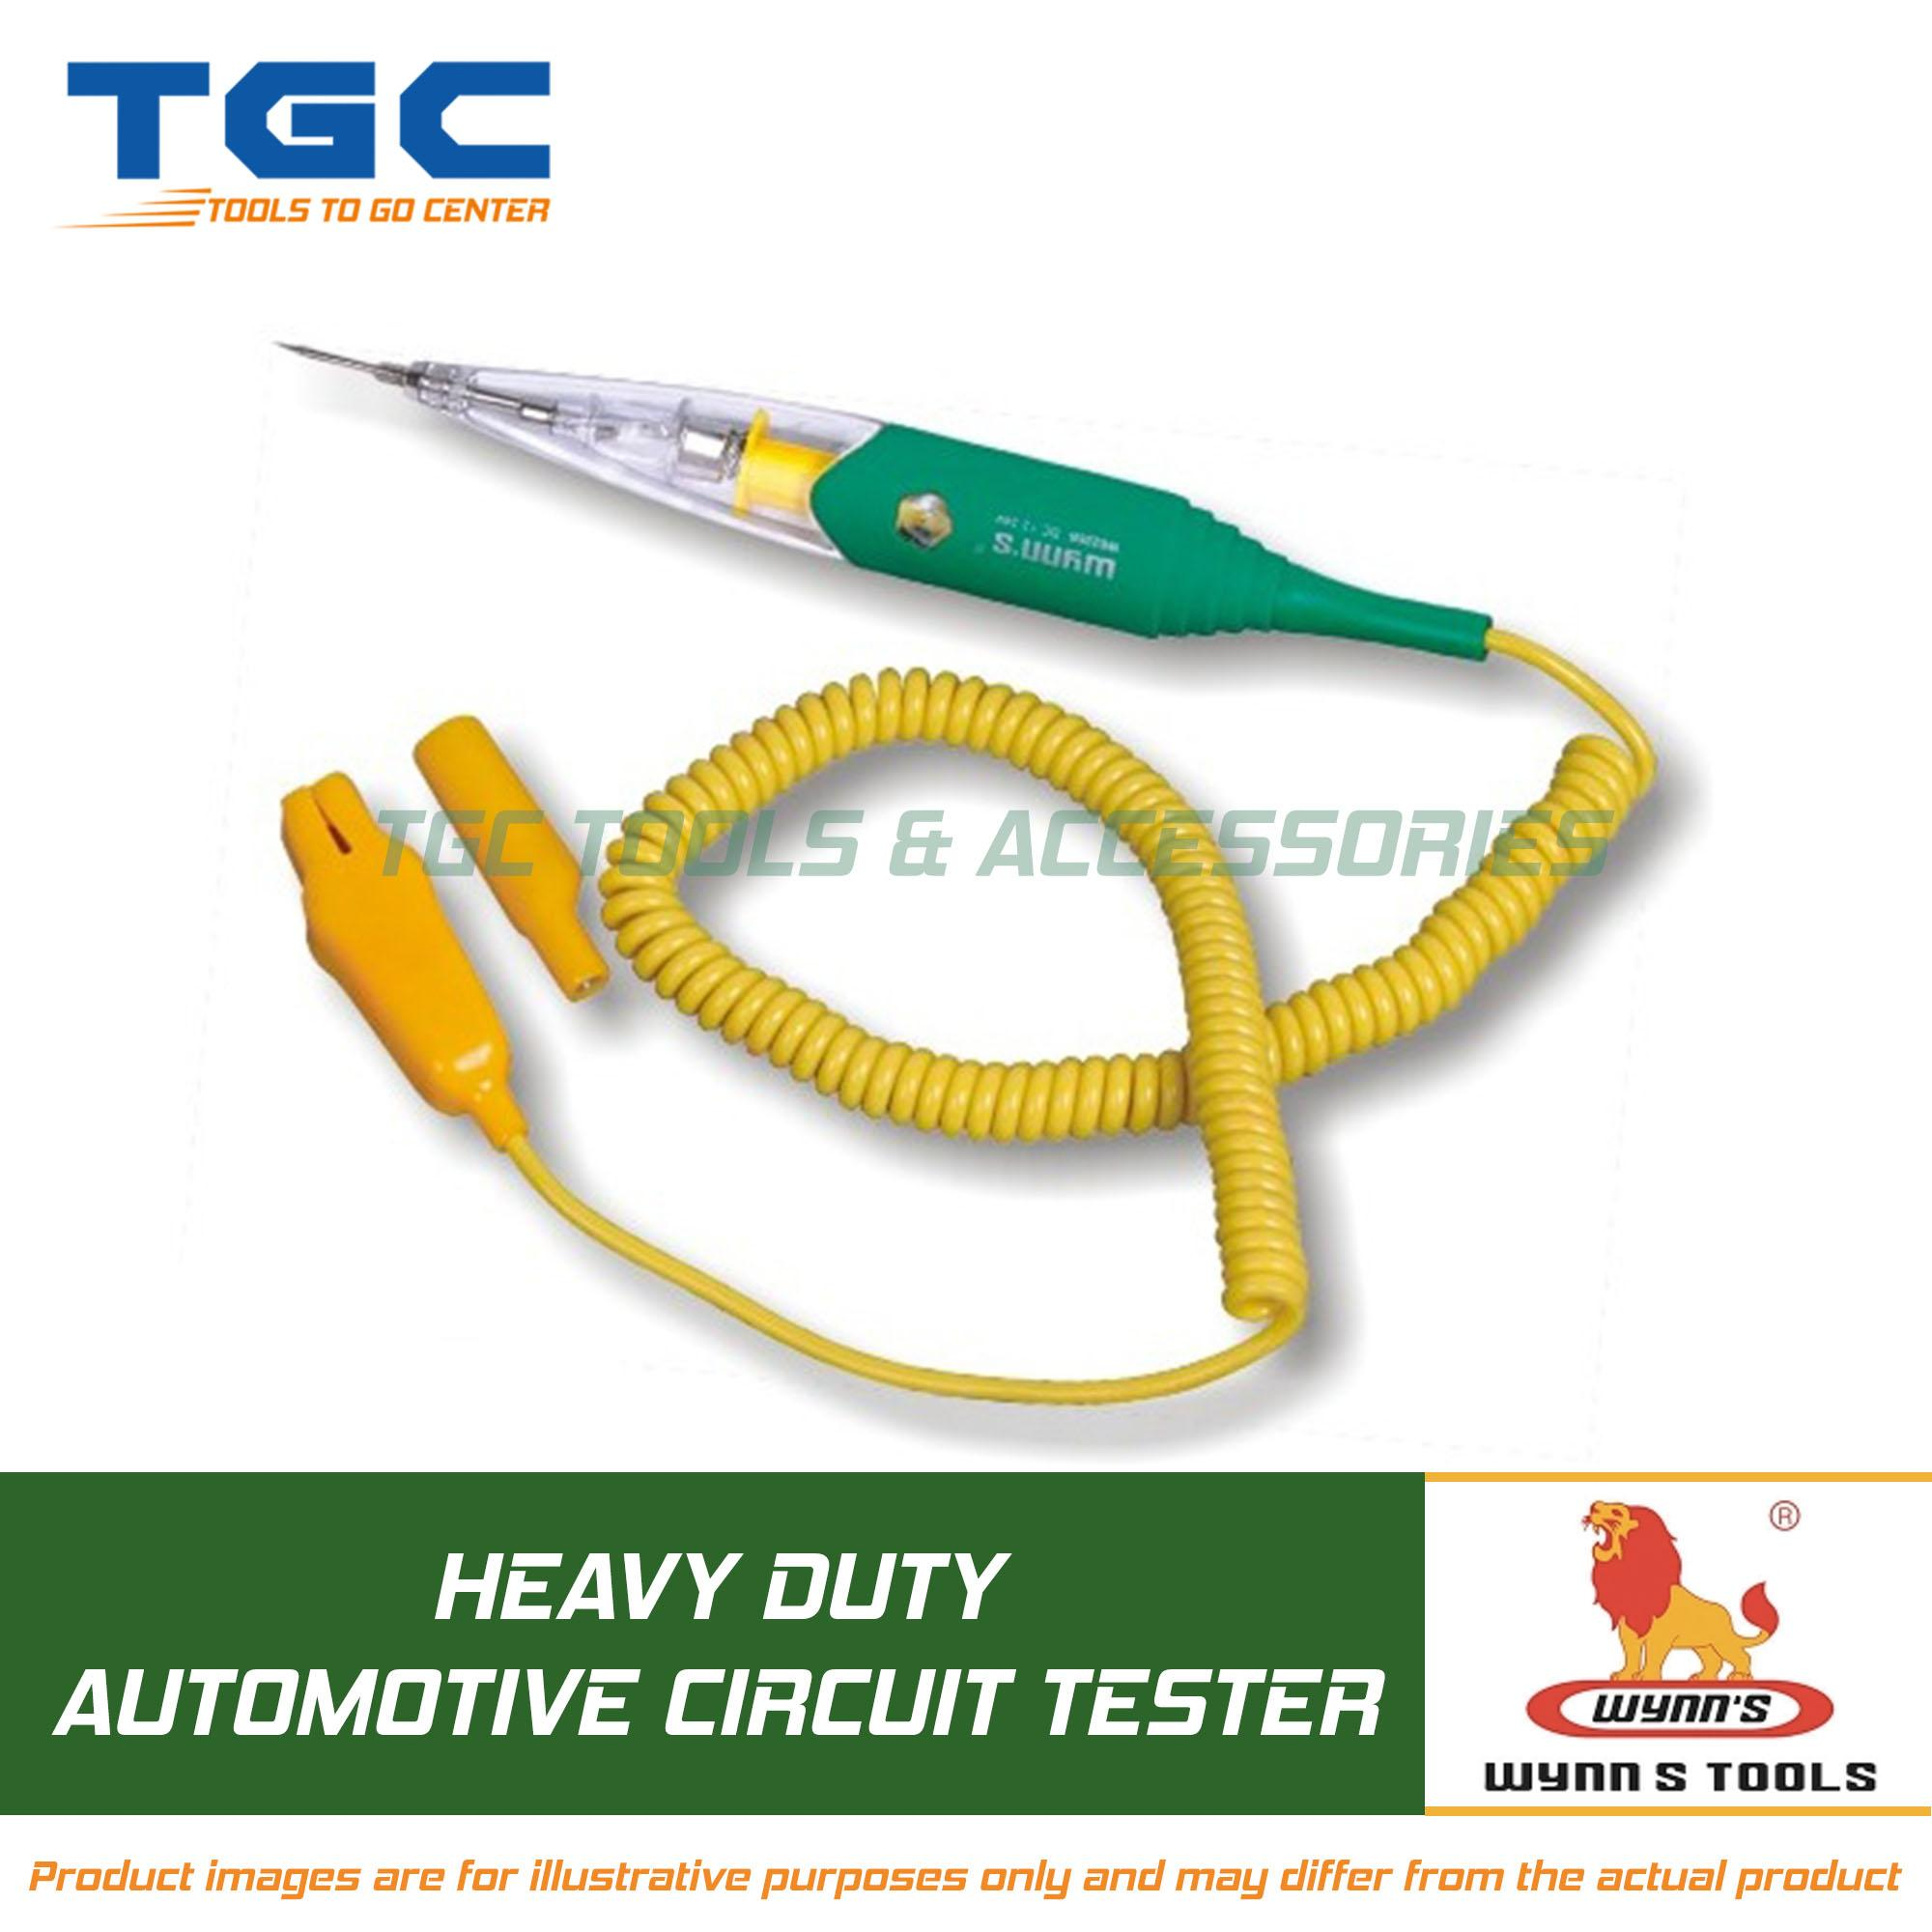 Buy Sell Cheapest Tps5430 Power Circuit Best Quality Product Deals Dc 6v12v Automotive Vehicle Tester Pen Indicator Light Wynns Heavy Duty 6v 12v 24v Insulated Handle